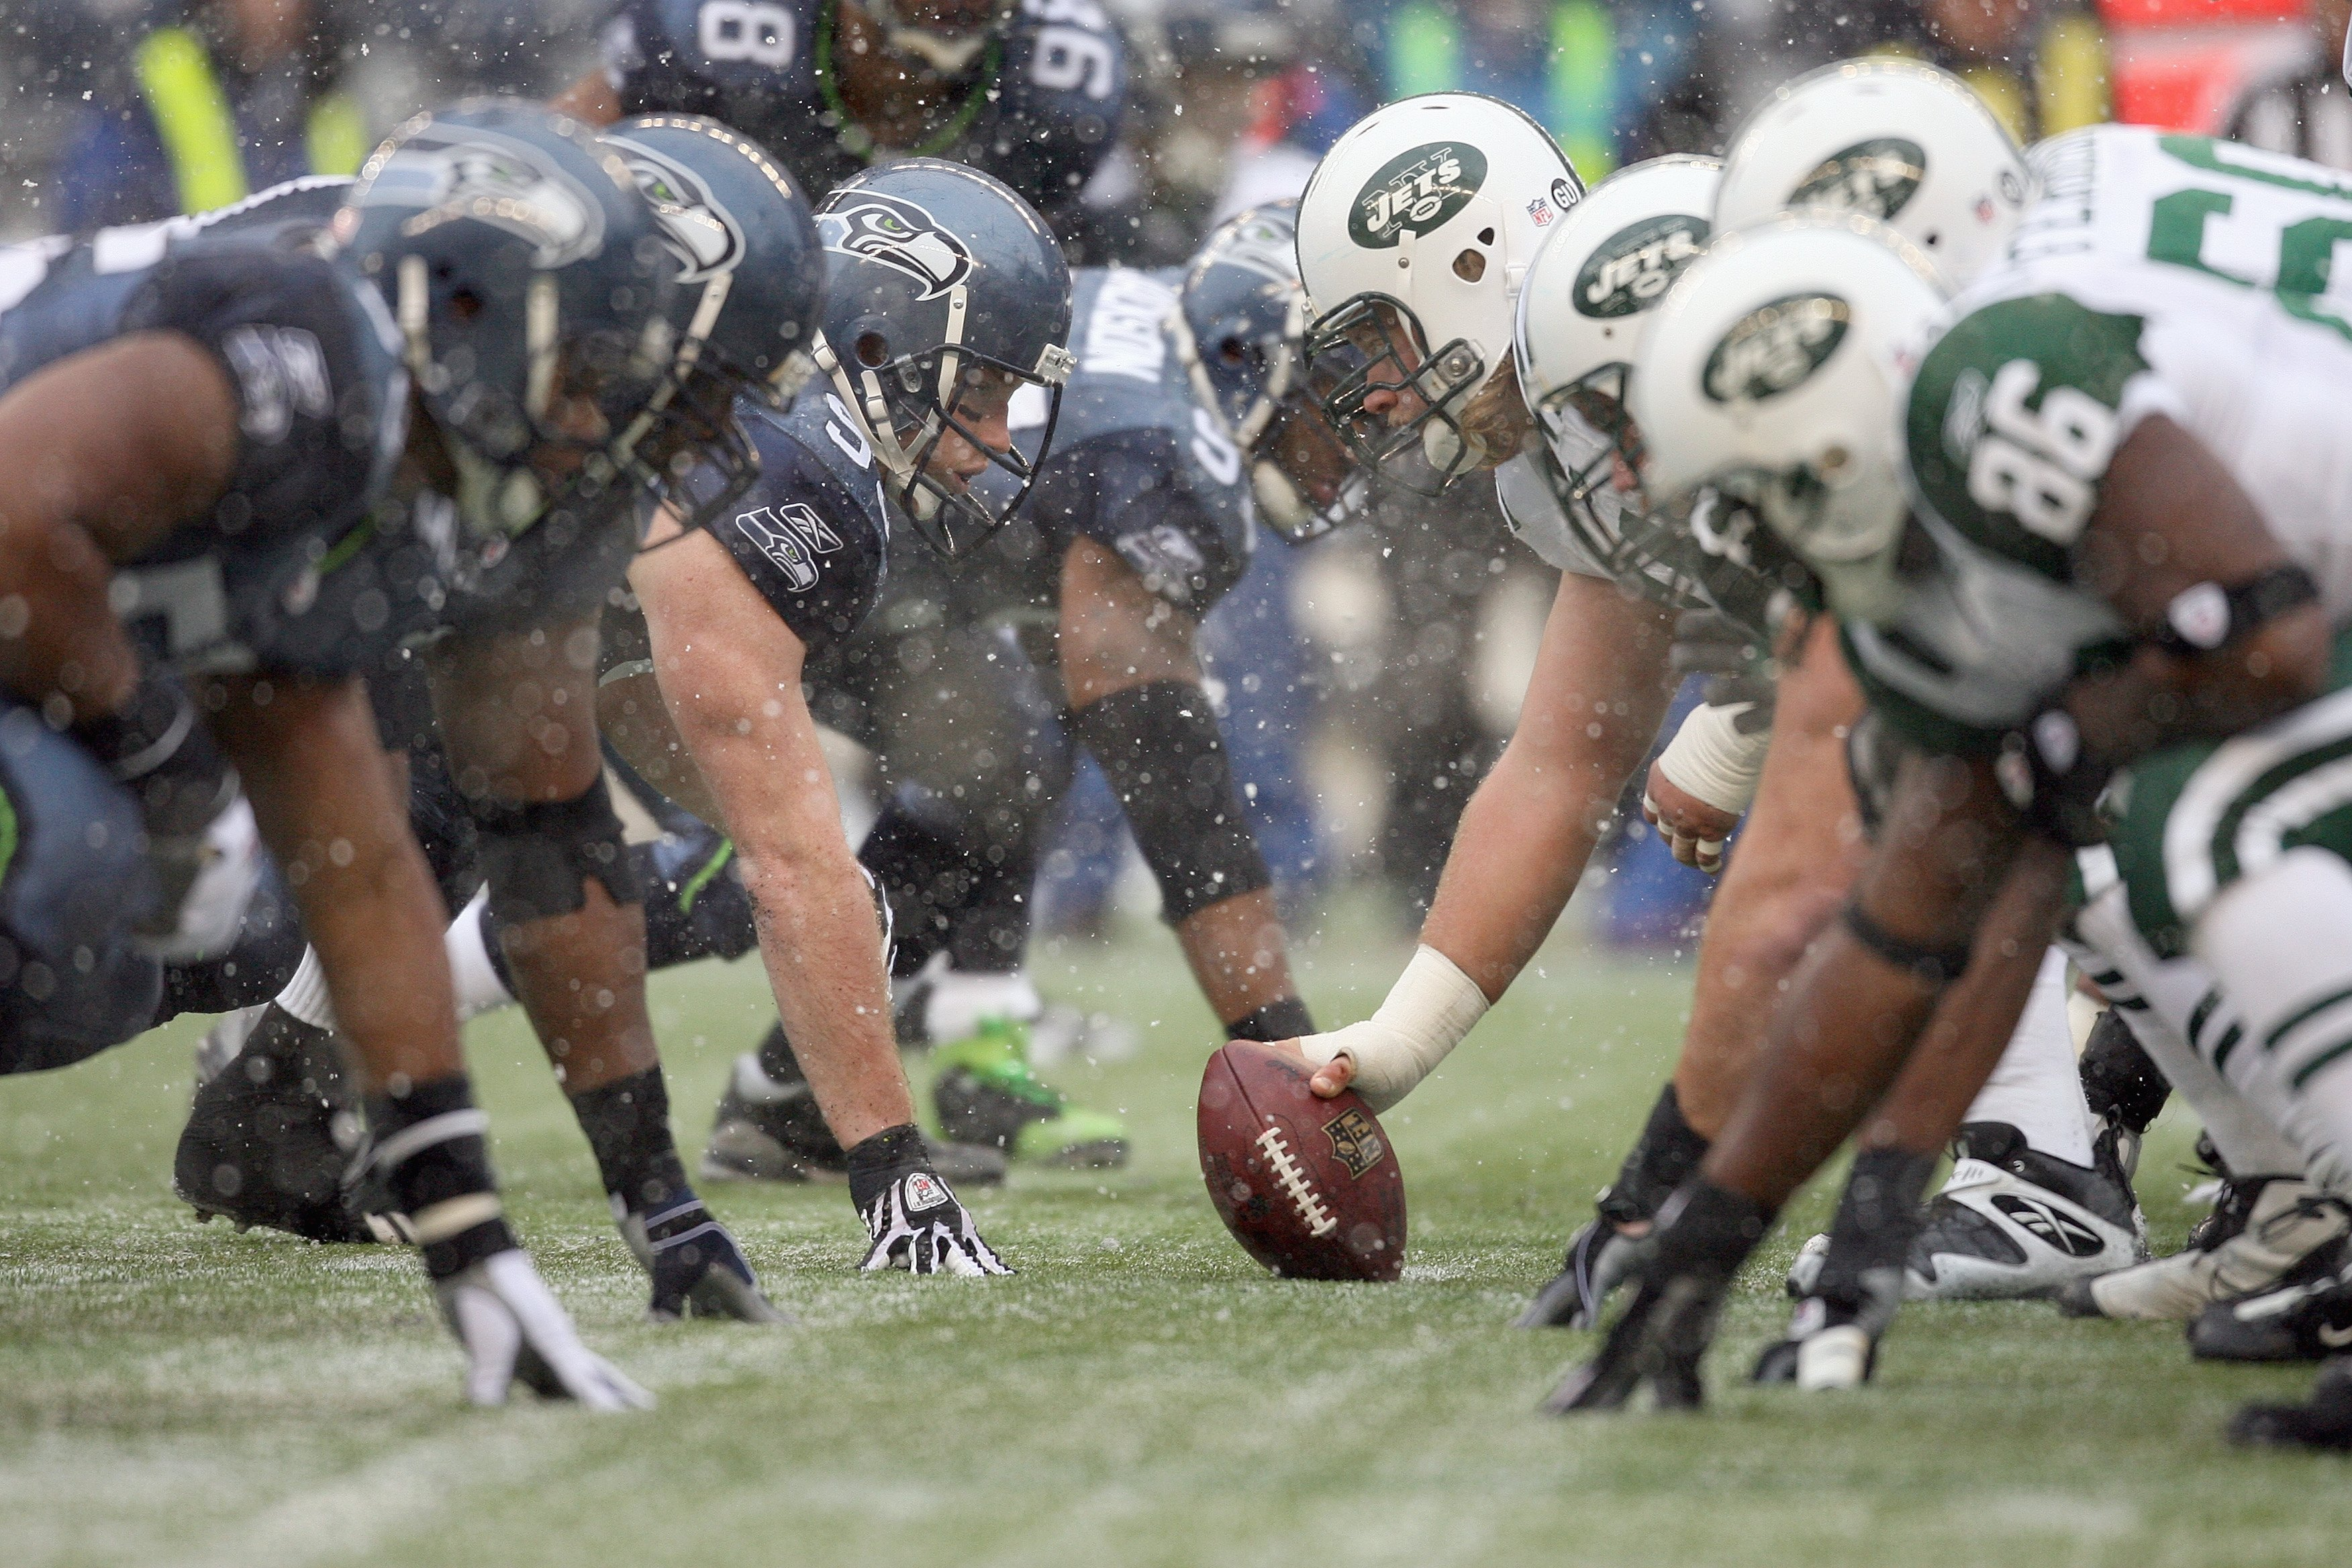 SEATTLE - DECEMBER 21:  The Seattle Seahawks defense lines up against the New York Jets offensive line on December 21, 2008 at Qwest Field in Seattle, Washington. The Seahawks defeated the Jets 13-3. (Photo by Otto Greule Jr/Getty Images)